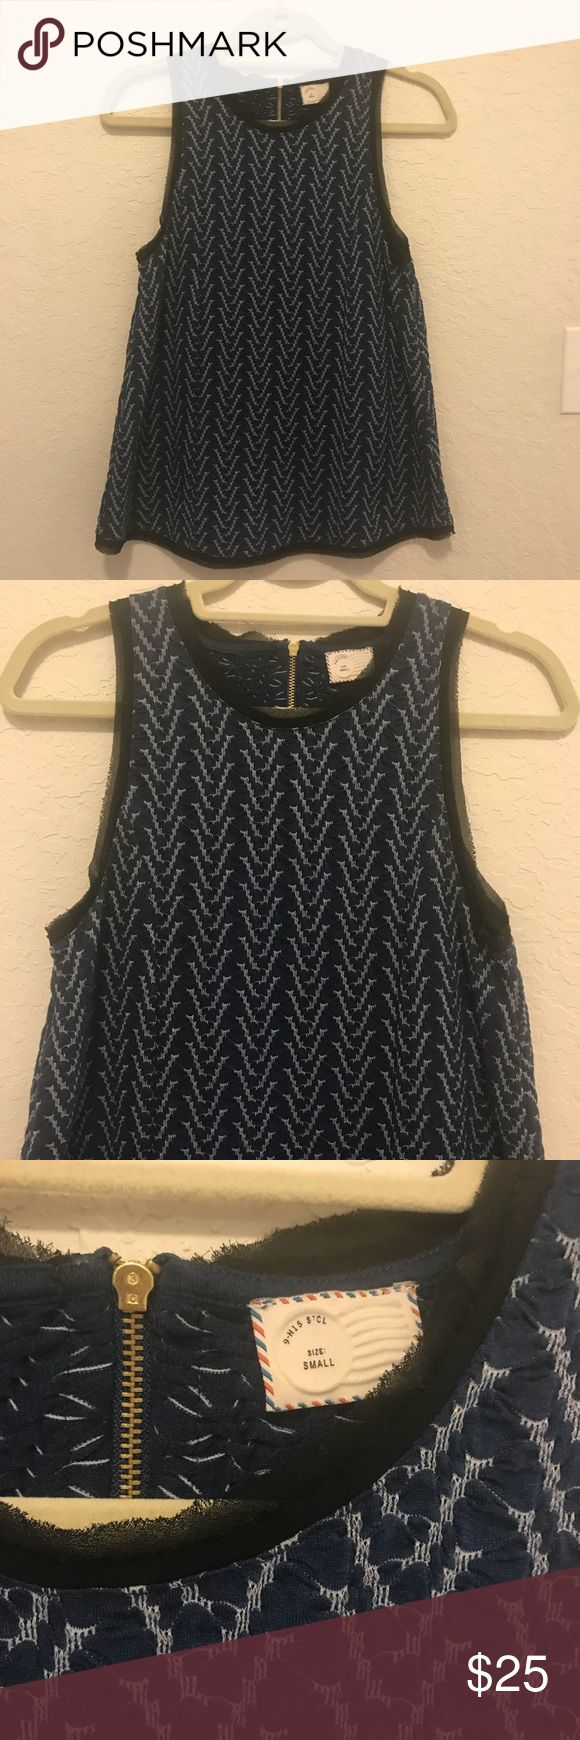 Anthropologie blue chevron top Anthropologie blue chevron top with exposed back zipper. Worn once. Great condition! Anthropologie Tops Blouses